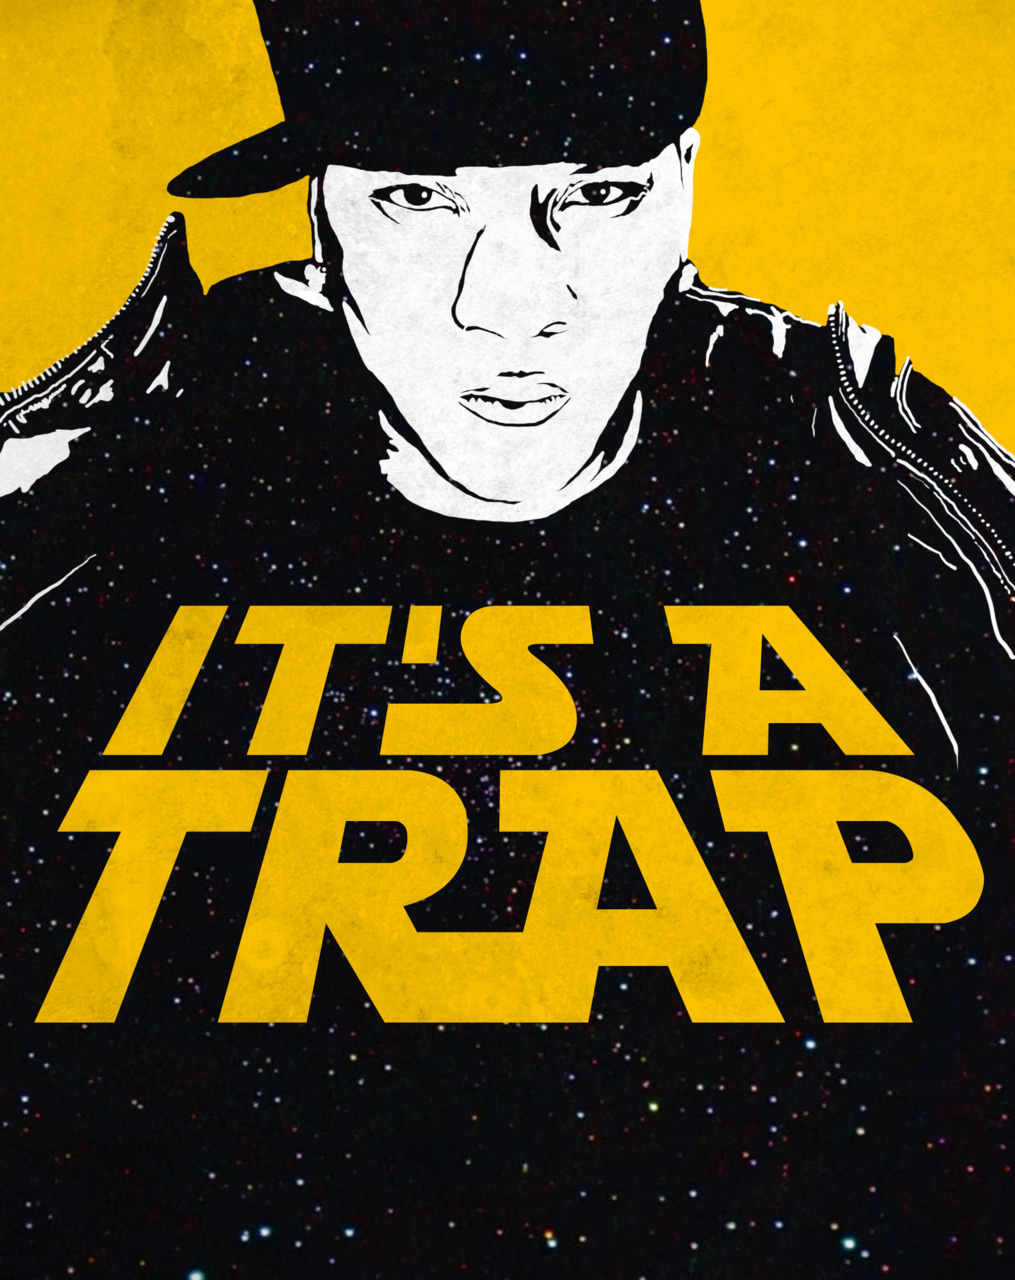 "Young Jeezy Akbar ""It's A Trap!"" by @Nickq83 aka braintrust.tumblr.com"